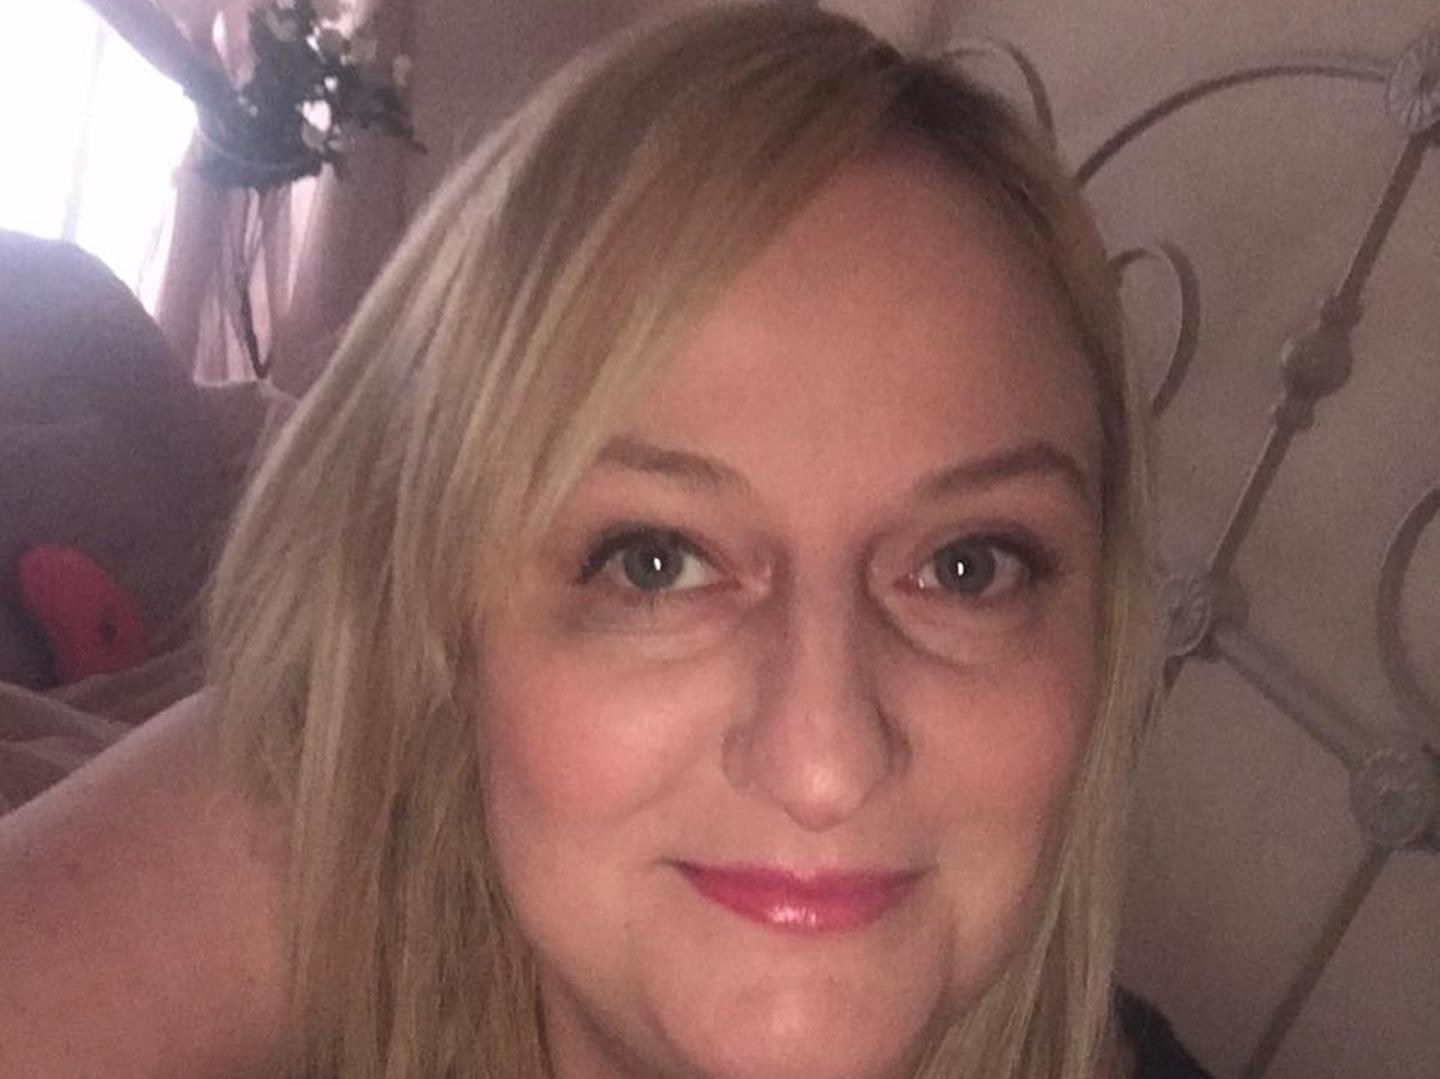 Leeds mum finds out man in her street is convicted paedophile - but is told to keep it secret from neighbours